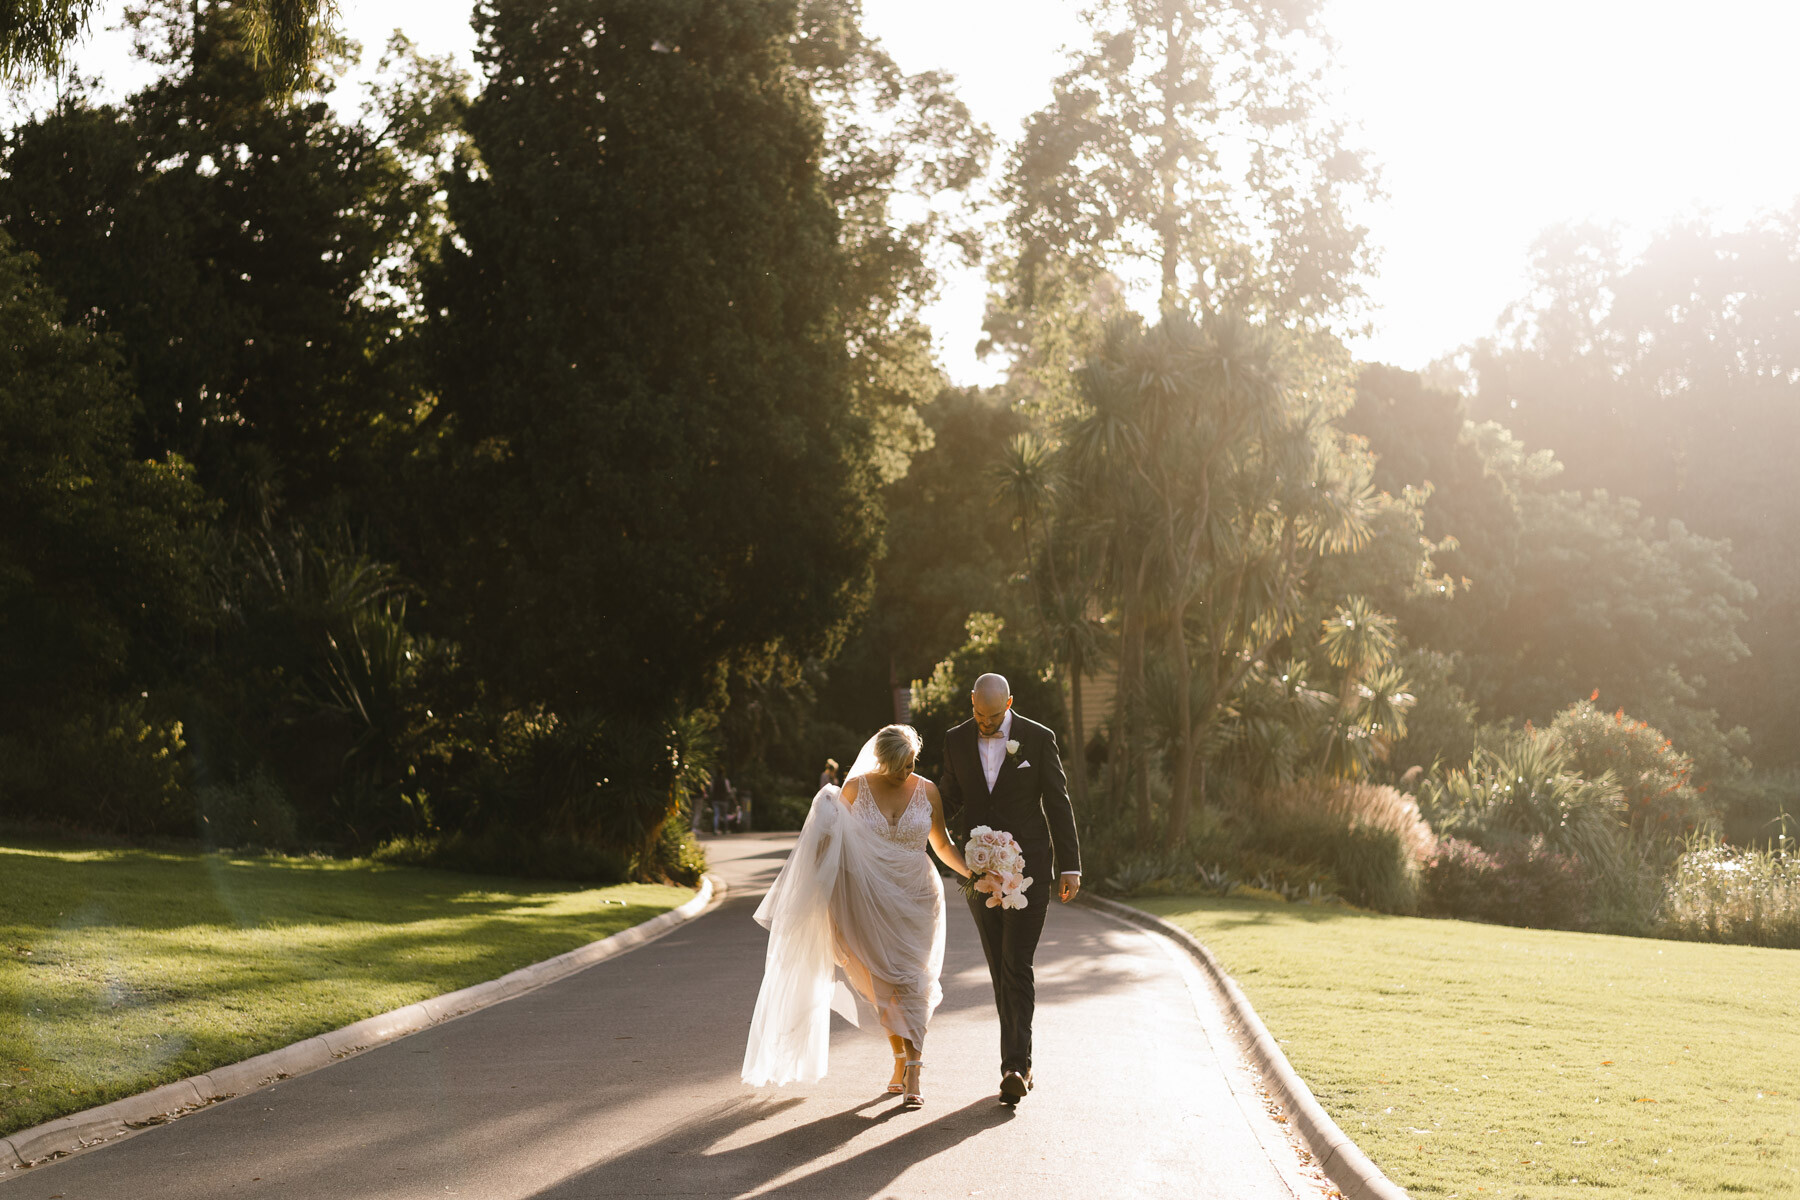 Is one photographer enough for a wedding?